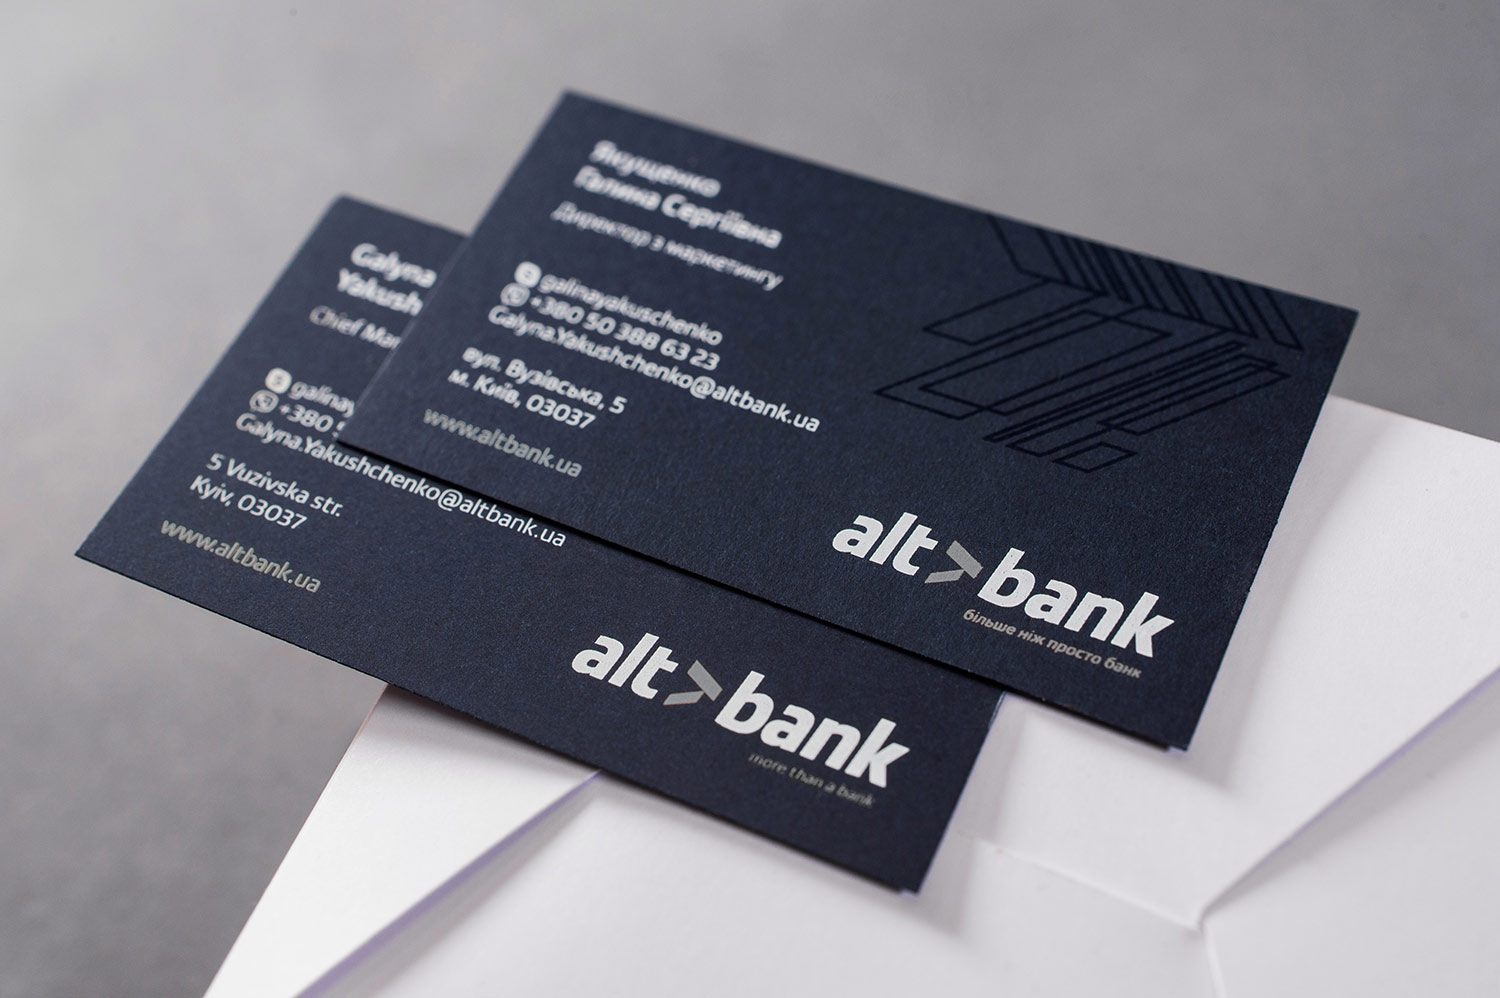 Bank business card design. Screen printing of Altbank business cards.